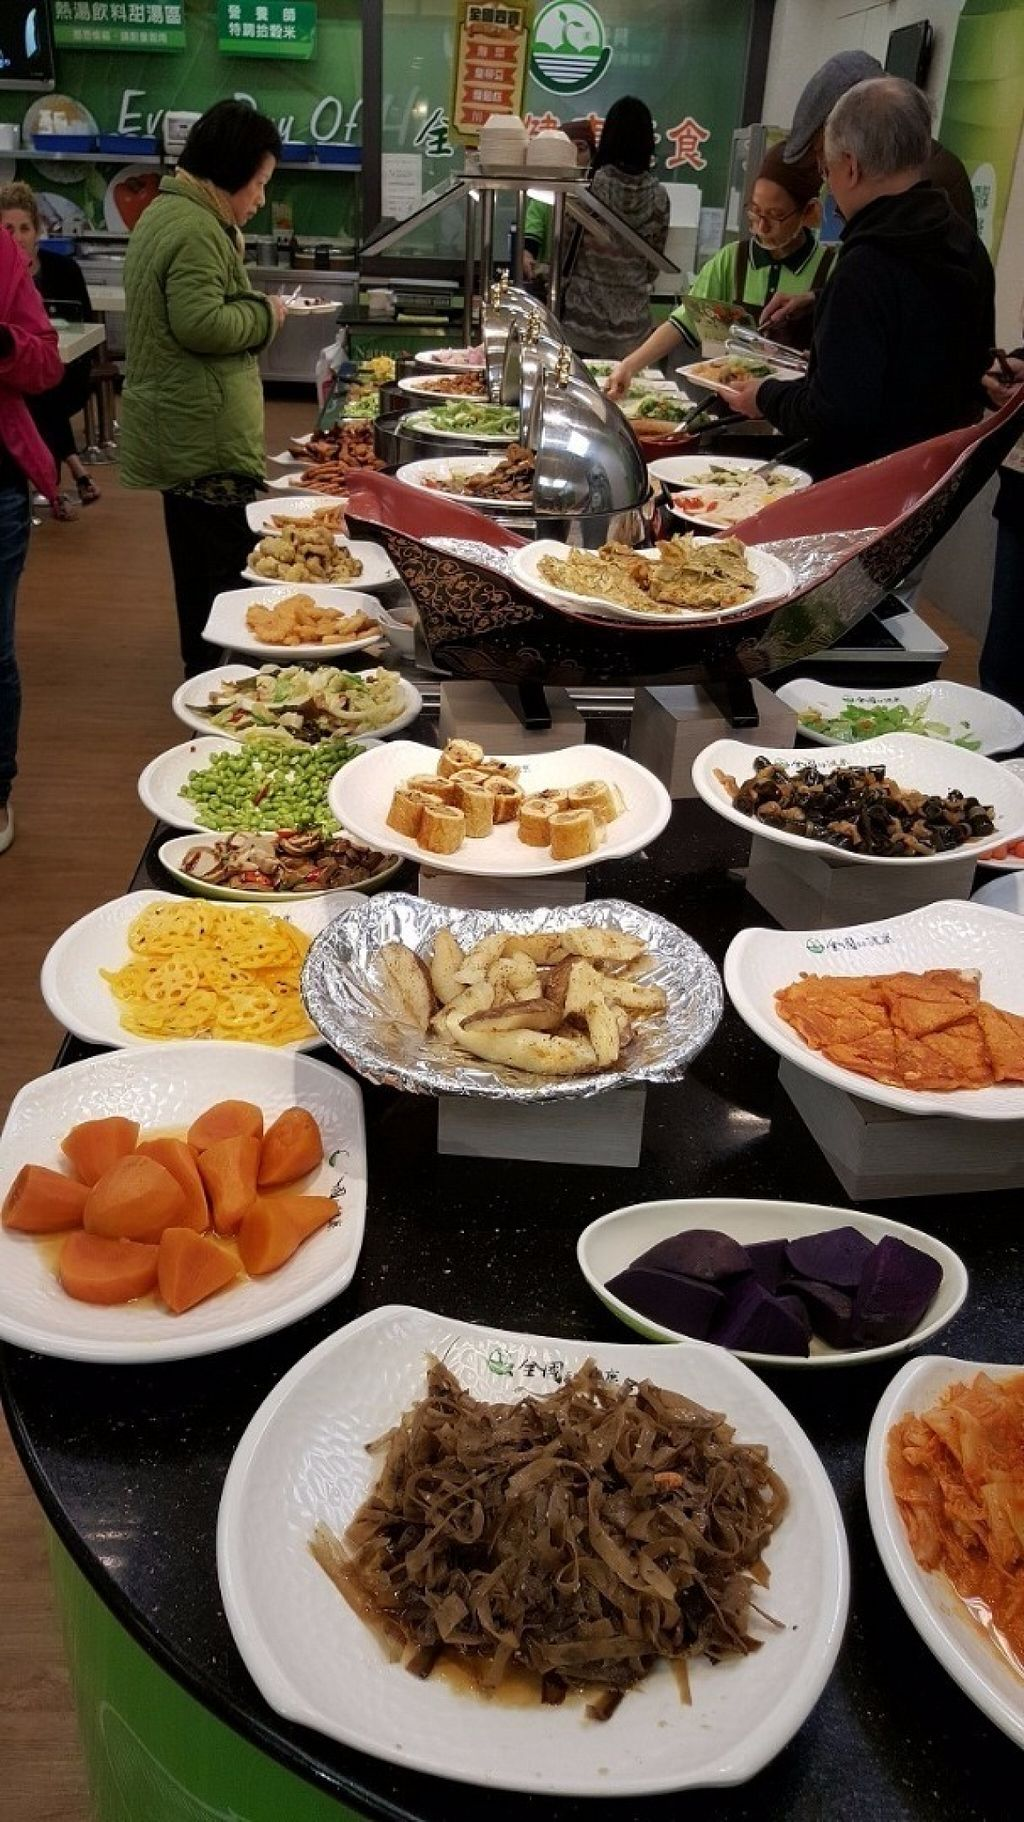 """Photo of Country Health - Tianmu  by <a href=""""/members/profile/yogiexplorer"""">yogiexplorer</a> <br/>Vegan buffet dishes <br/> July 30, 2016  - <a href='/contact/abuse/image/47139/163308'>Report</a>"""